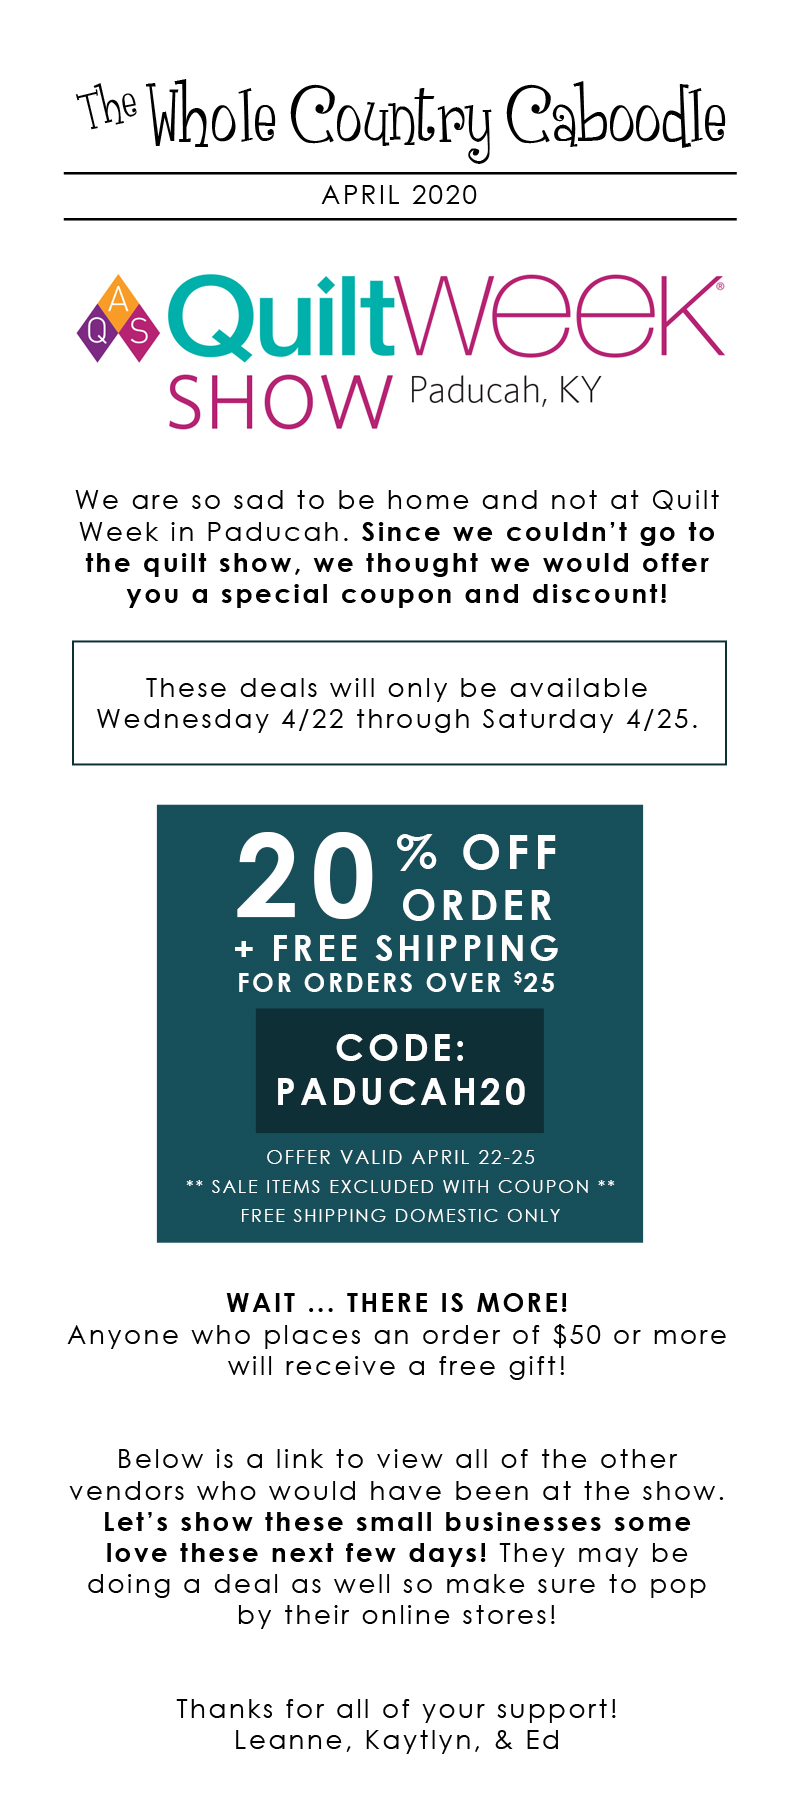 We are so sad to be home and not at Quilt Week in Paducah. Since we couldn't go to the quilt show, we thought we would offer you a special coupon and discount!